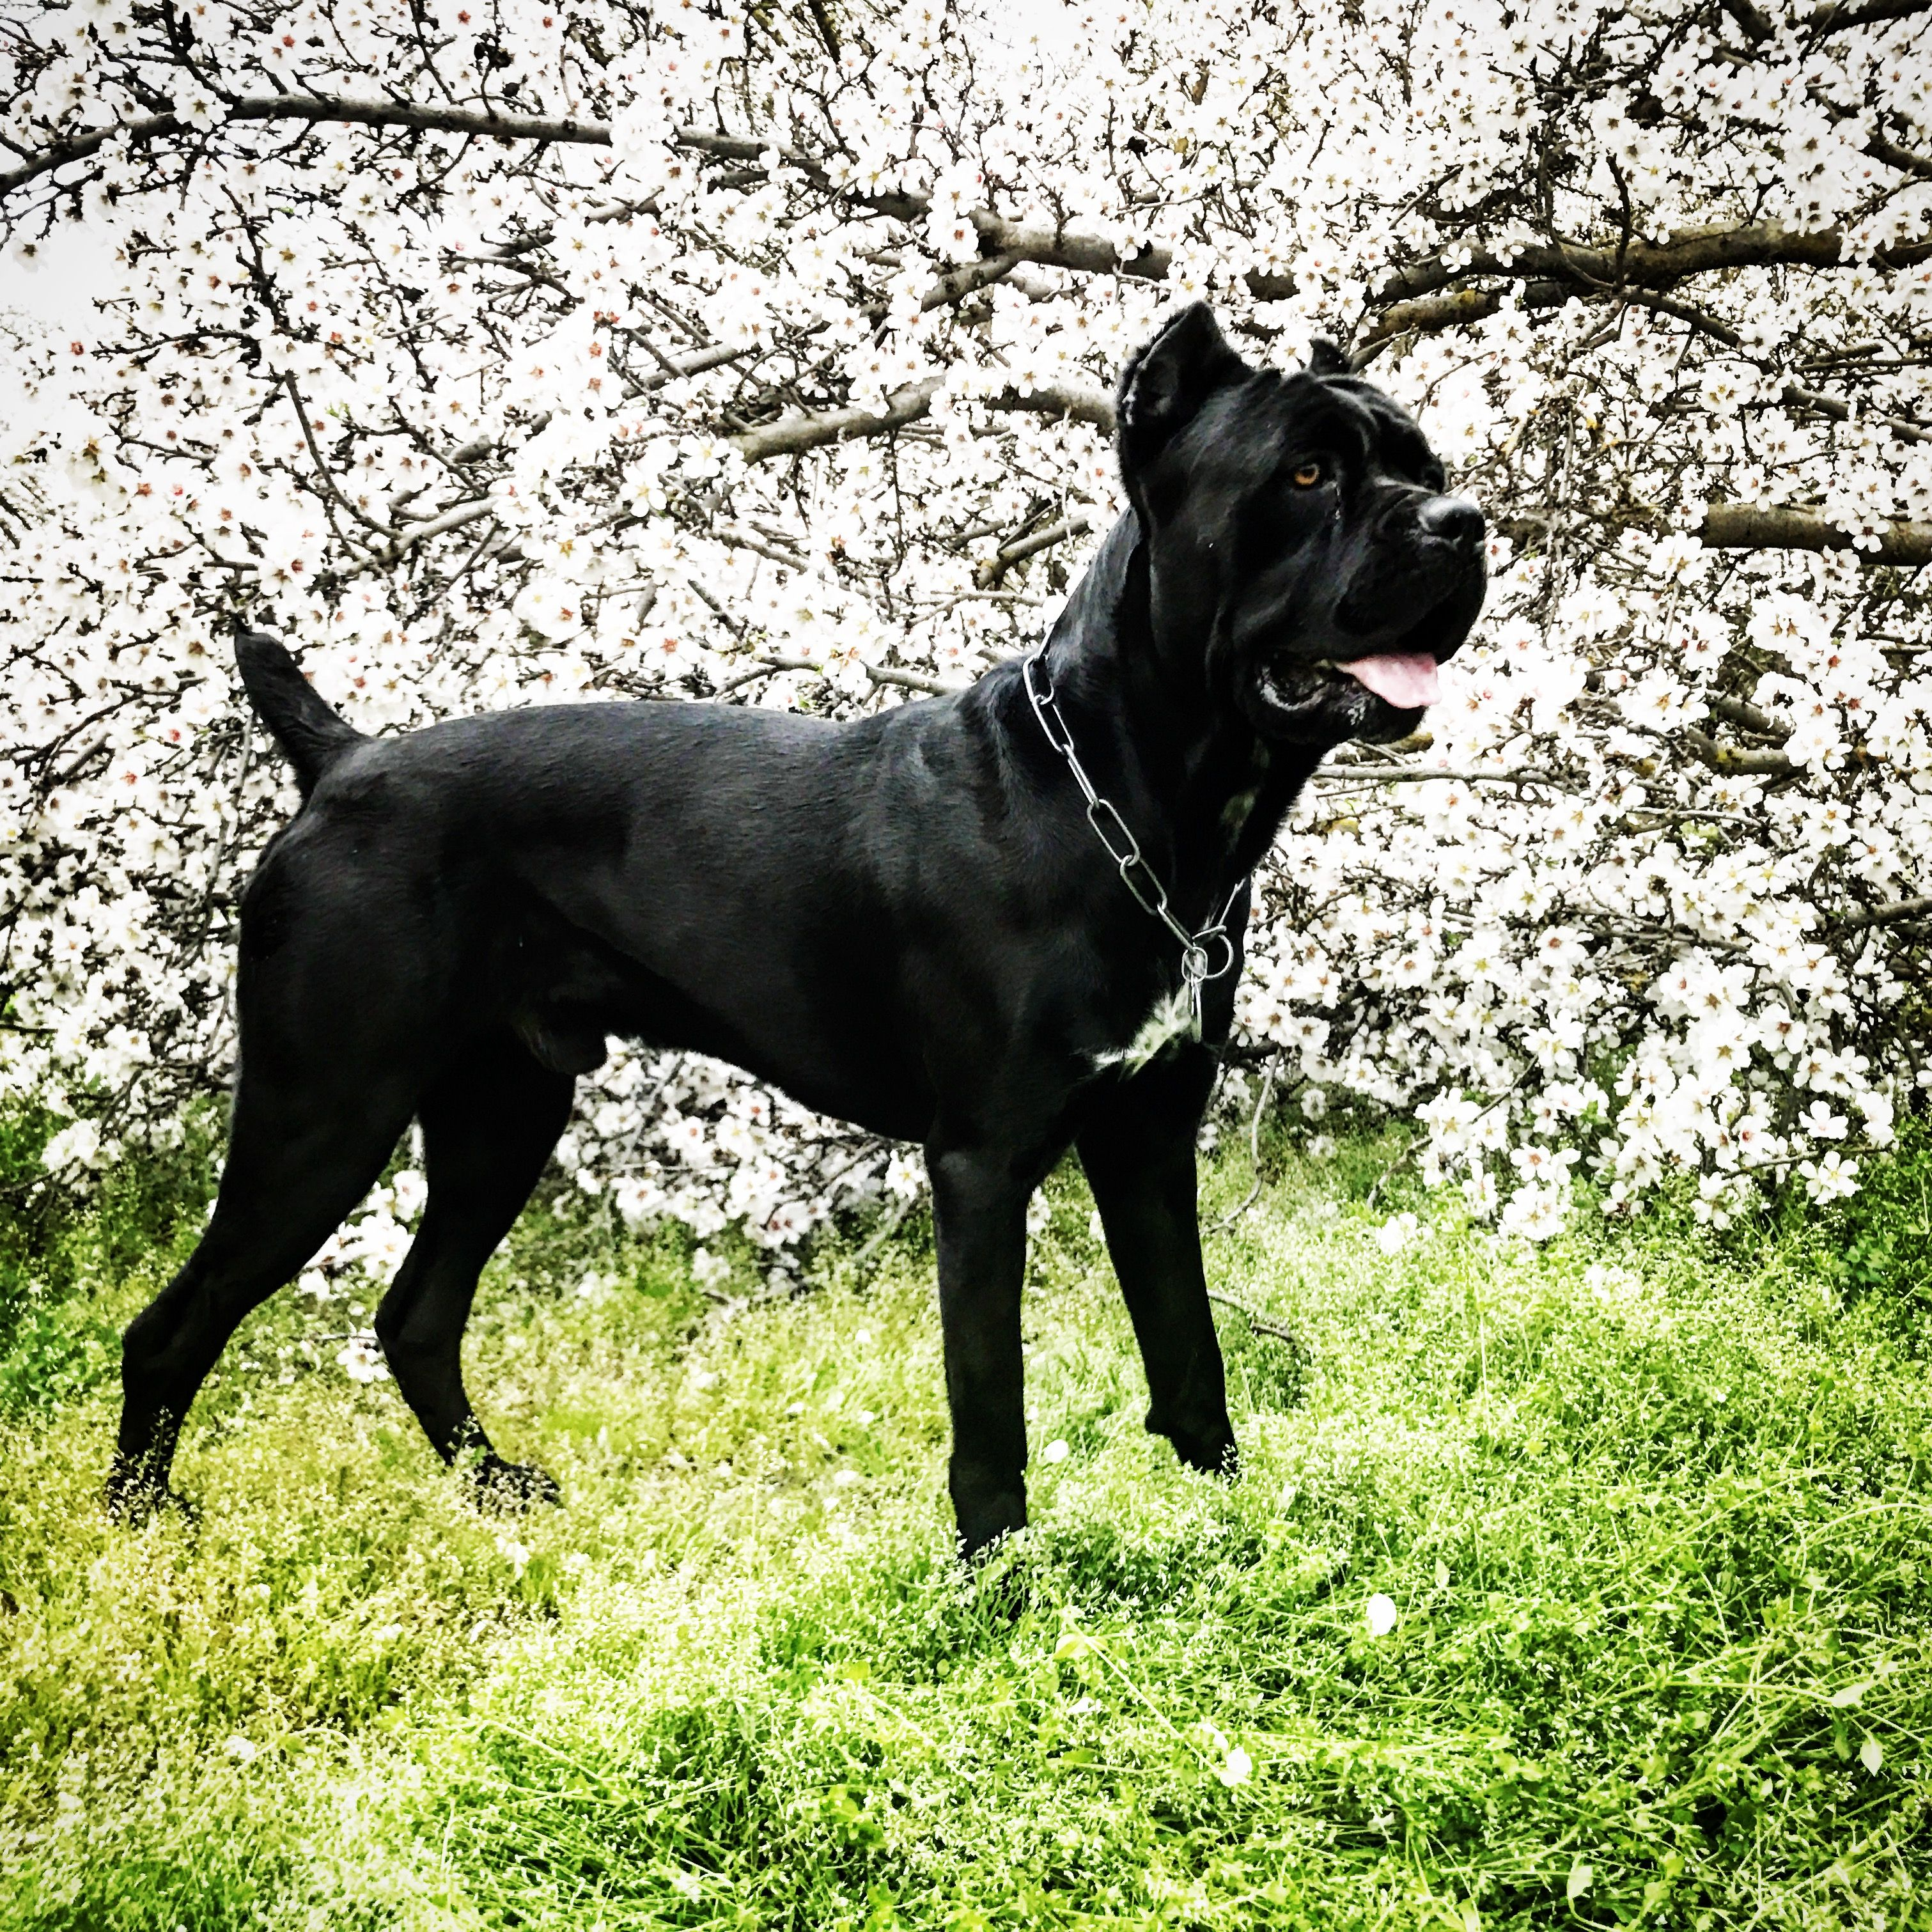 Cane corso italian mastiff aonghuscanecorso on instagram cane corso italian mastiff aonghuscanecorso on instagram malvernweather Image collections